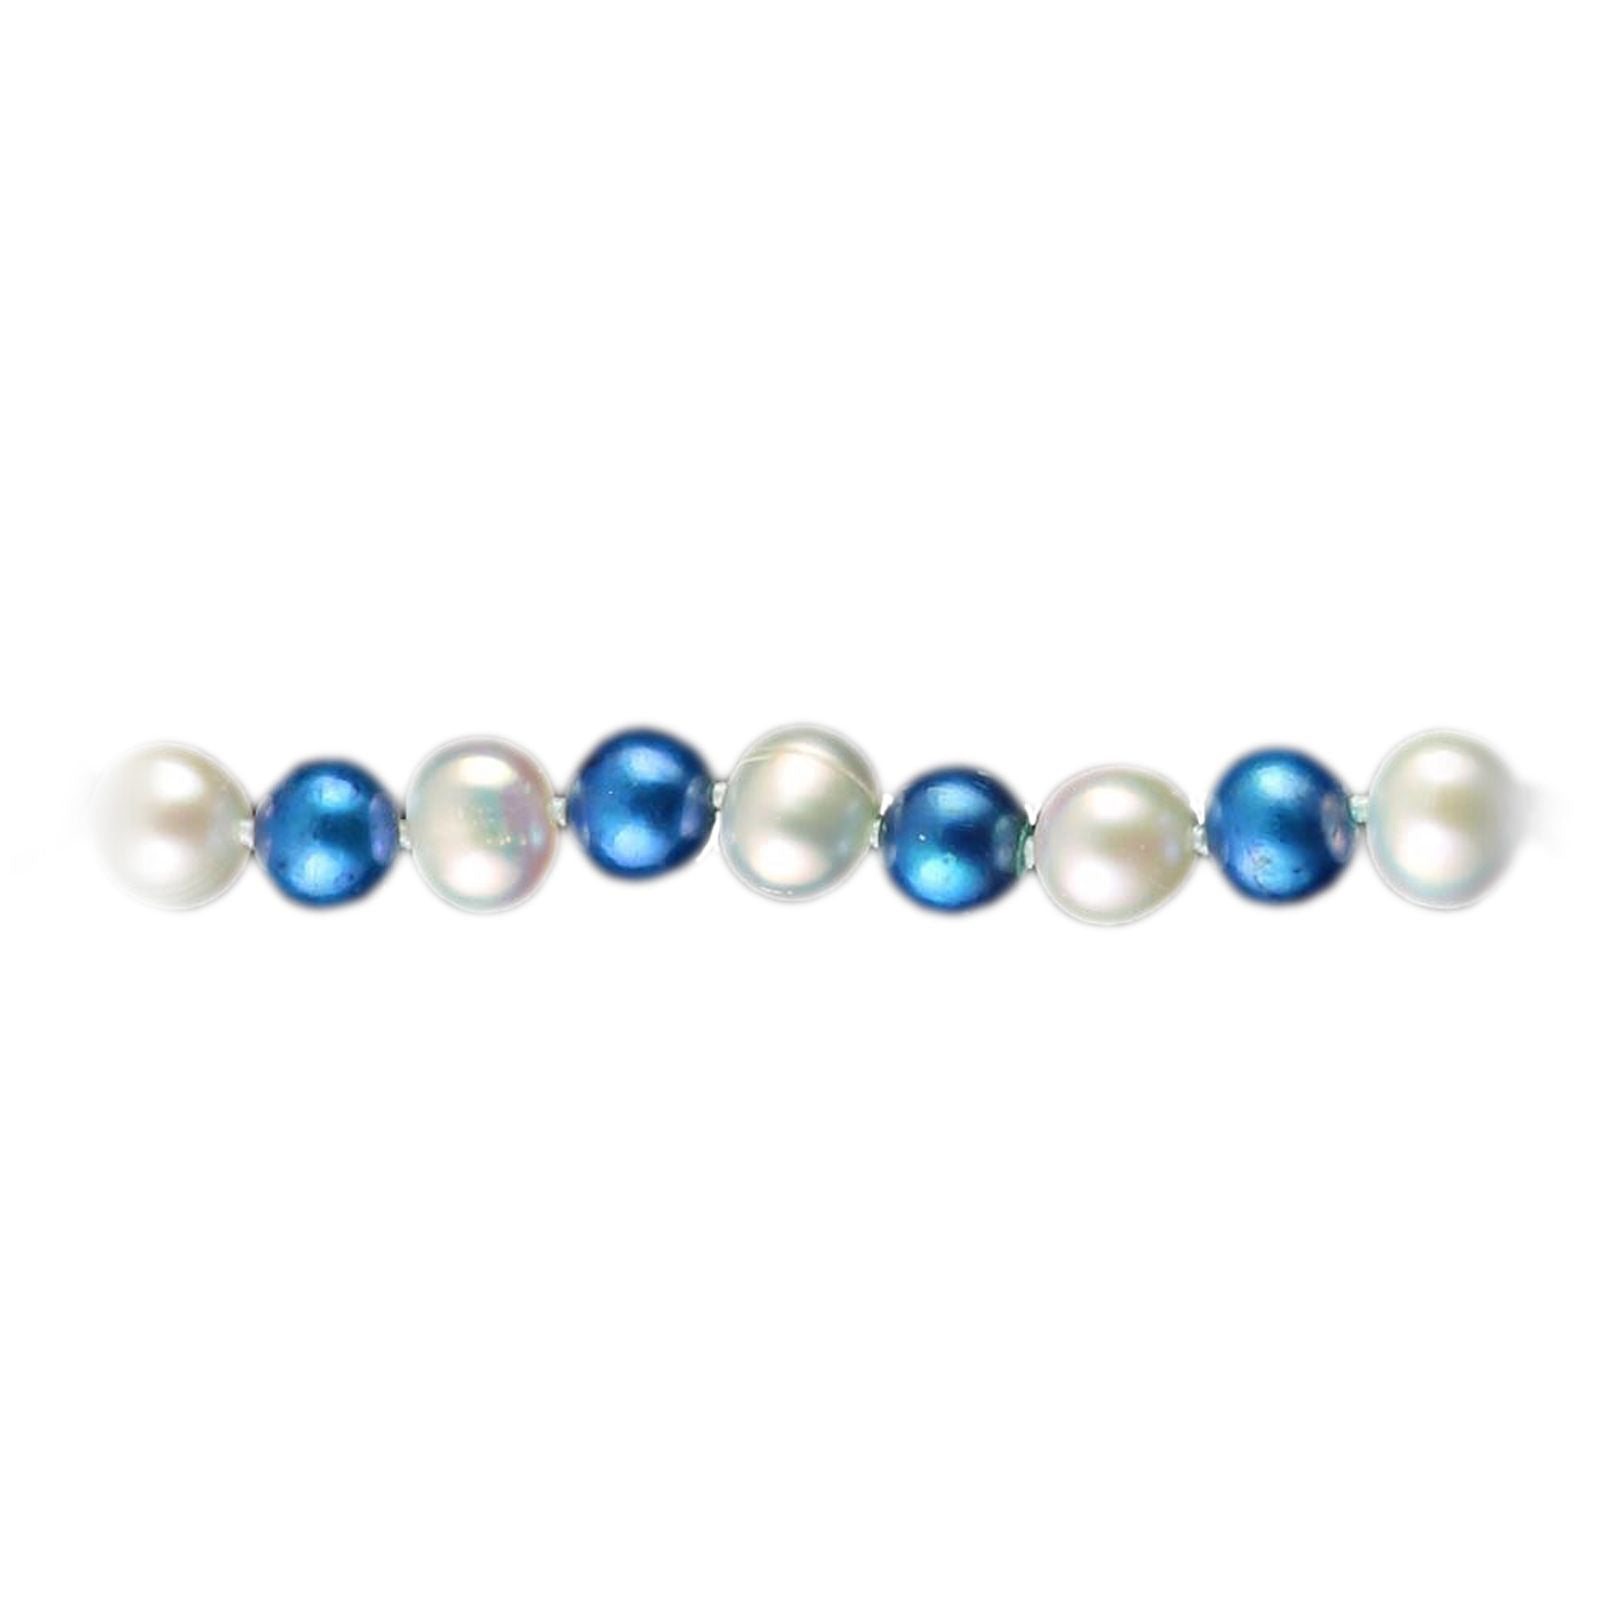 SPECIAL! Collegiate University of Kentucky Blue and White Pearl Necklace-1